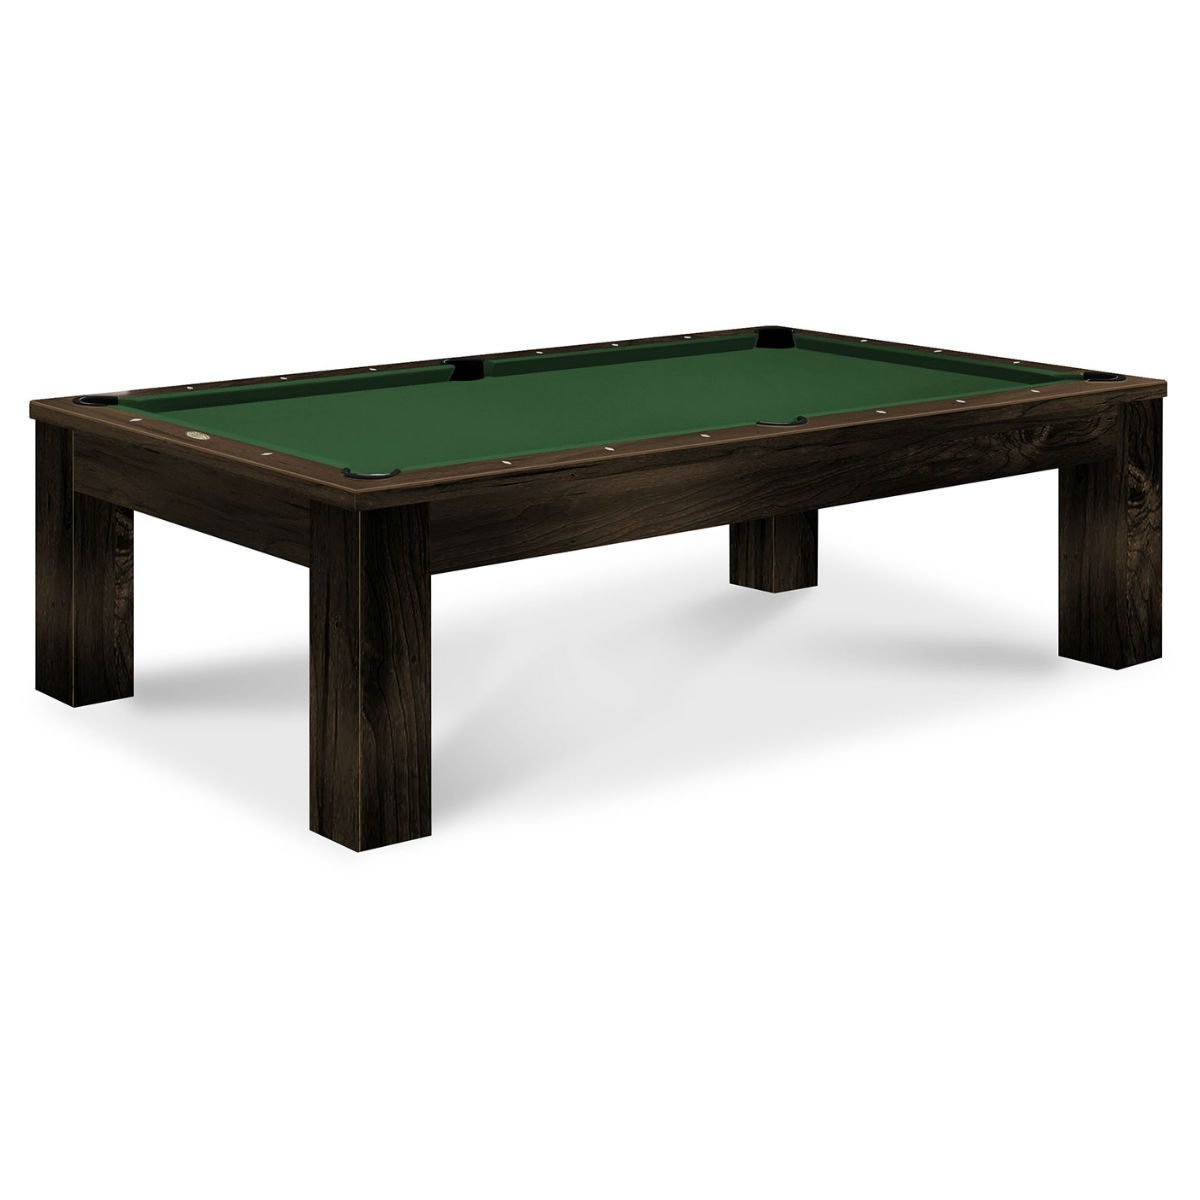 Olhausen Pool Tables Near Montgomeryville PA Shop Today - American heritage madison pool table